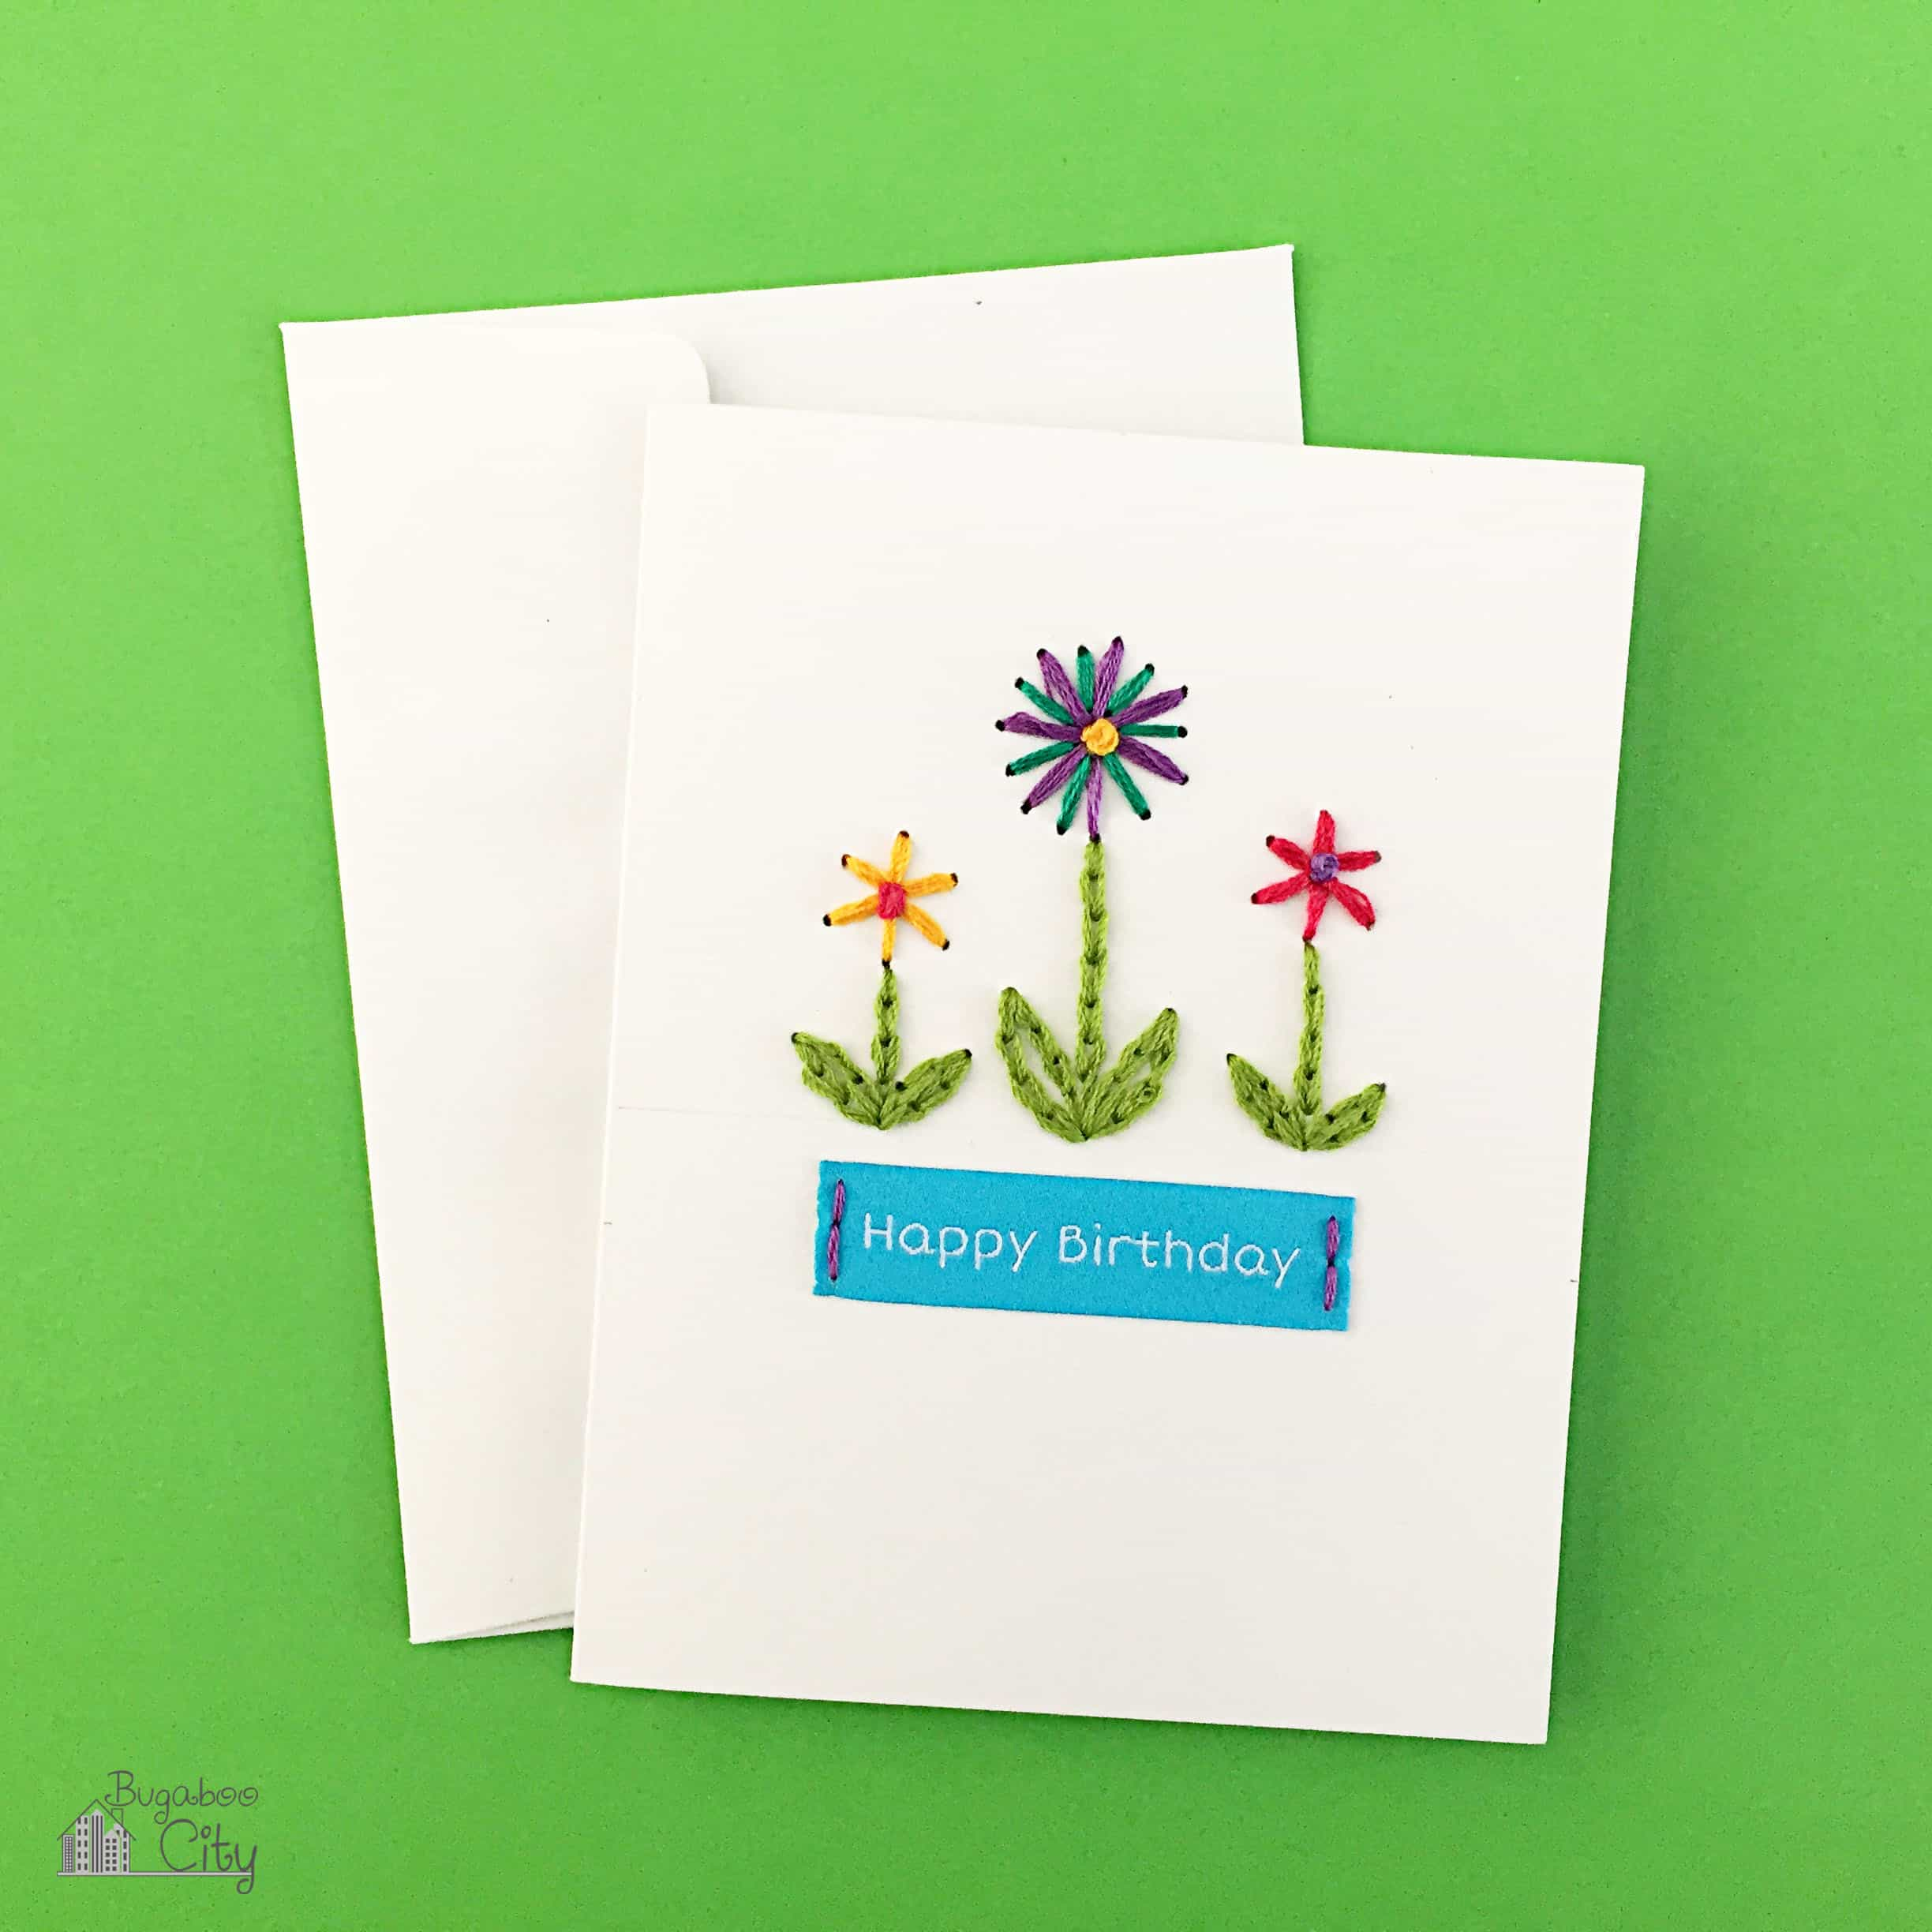 Diy embroidered cards bugaboocity diy embroidered card kristyandbryce Image collections